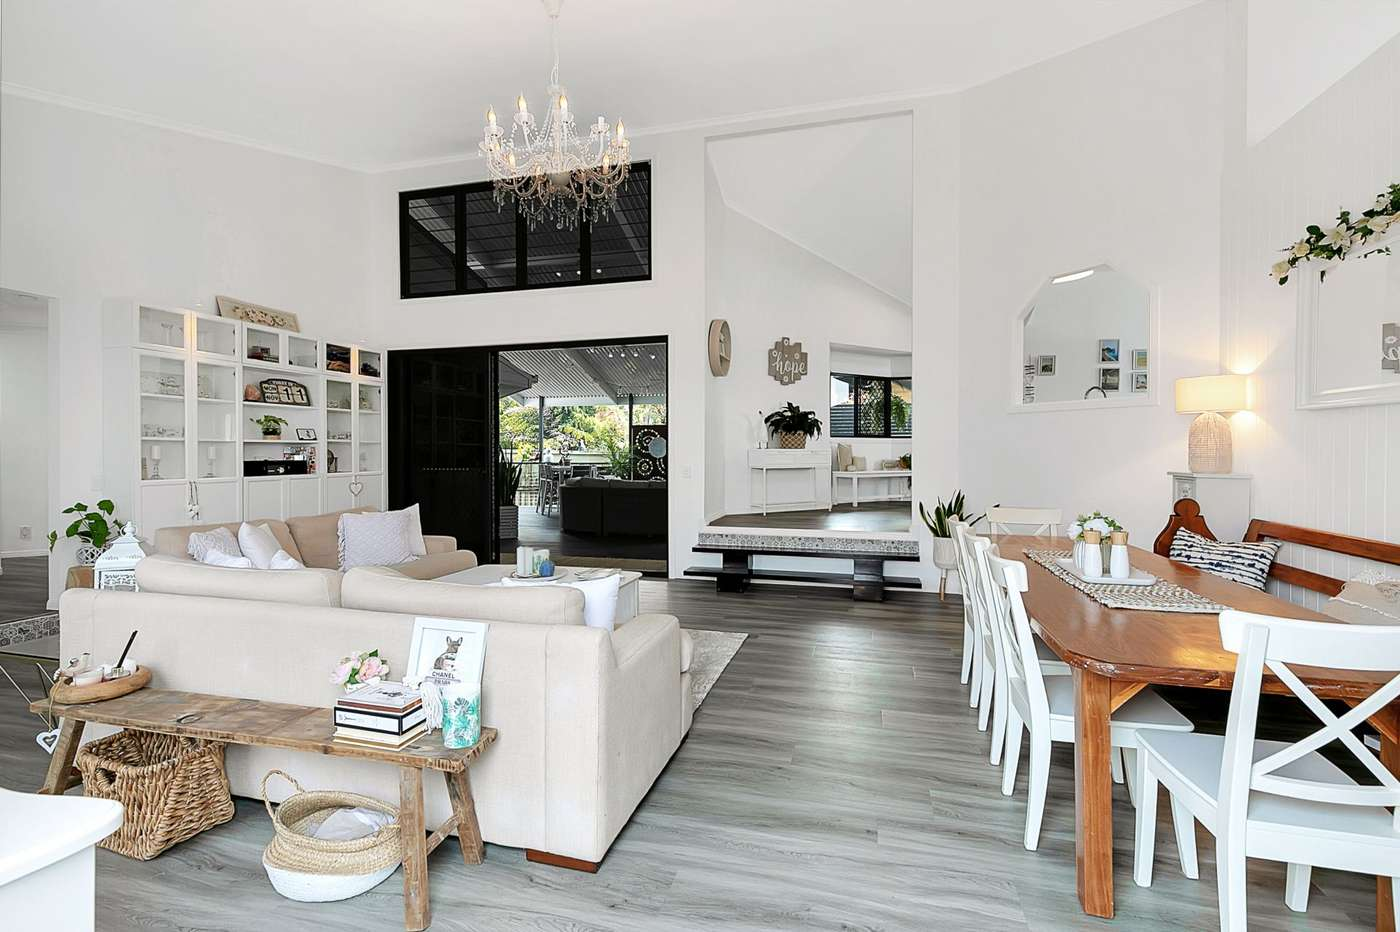 Main view of Homely house listing, 22 Prunda Circuit, Wellington Point, QLD 4160